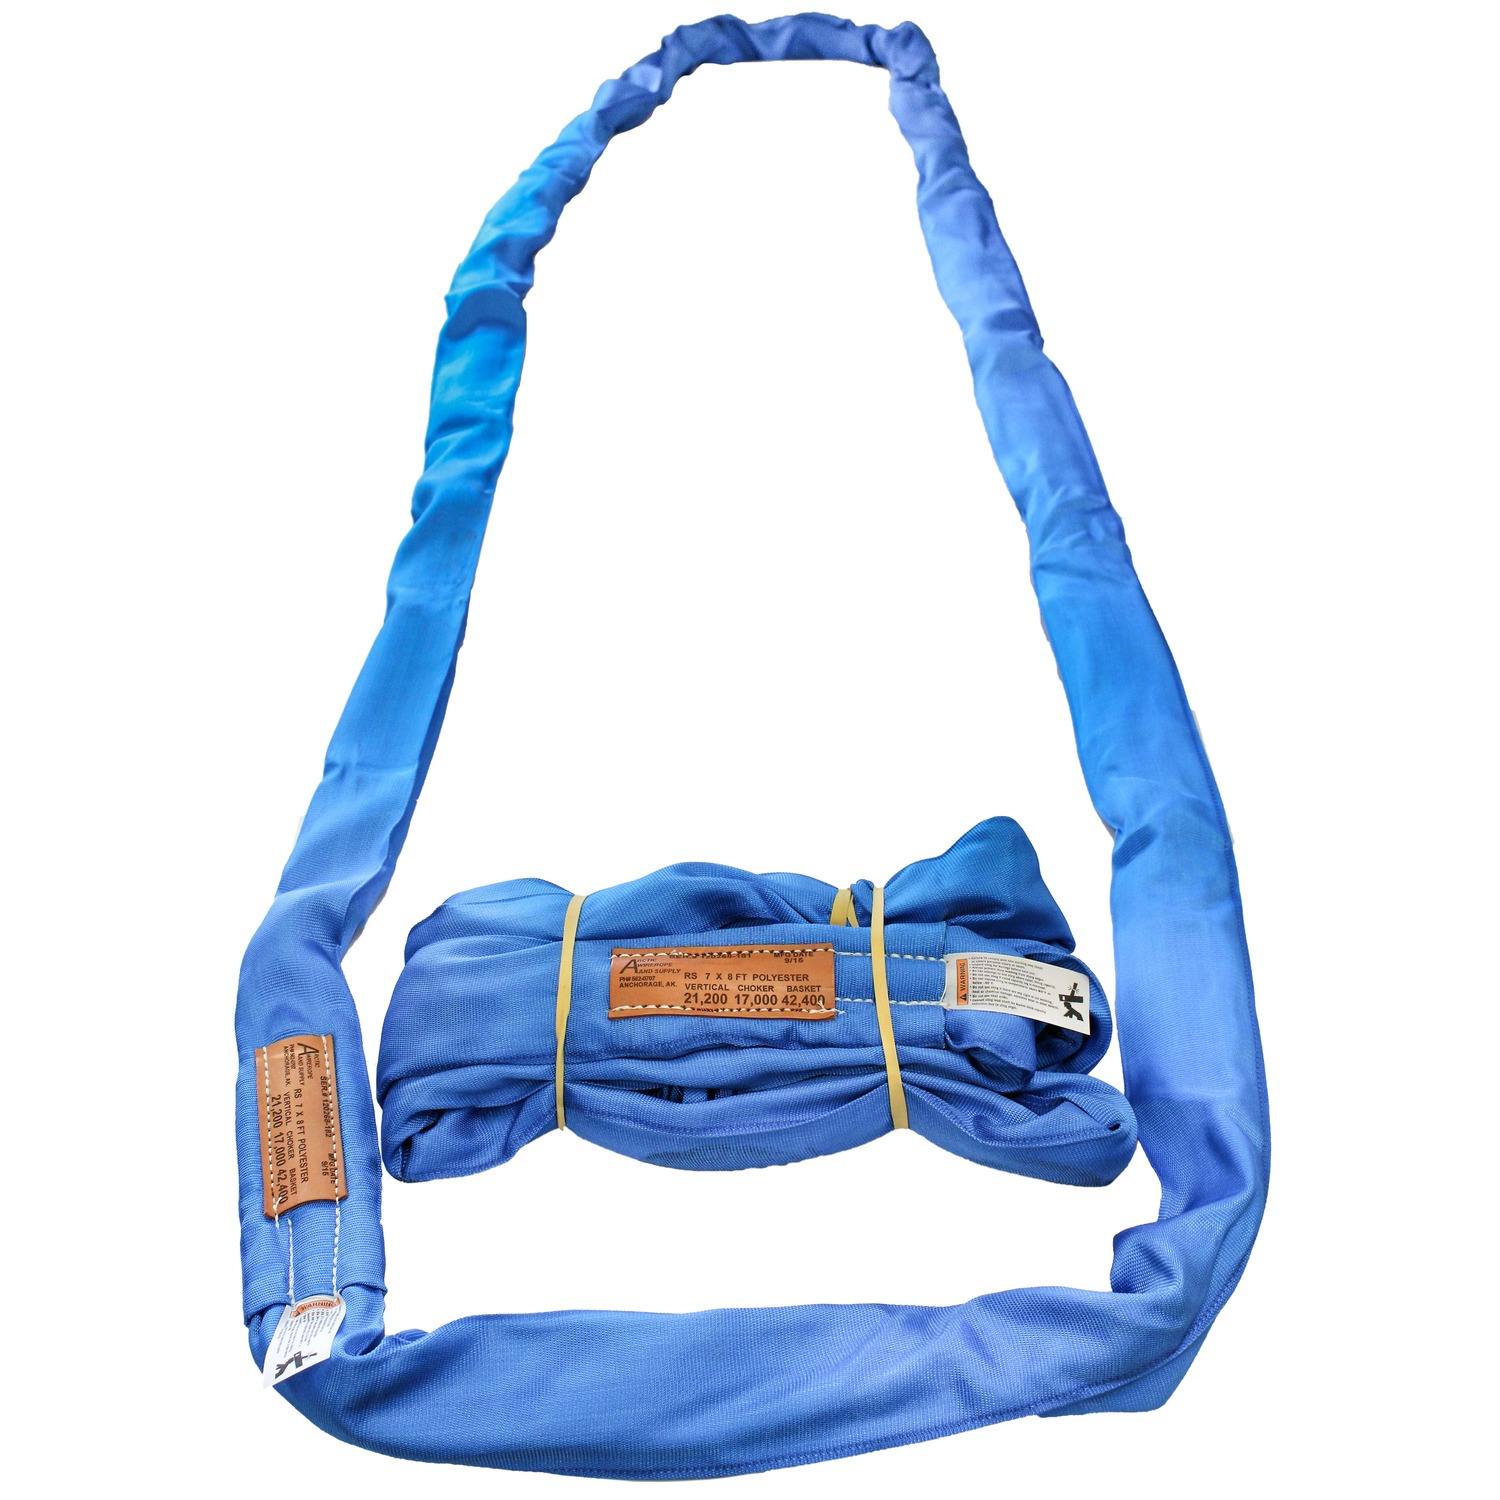 Lifting Slings | Product Categories | Arctic Wire, Rope & Supply